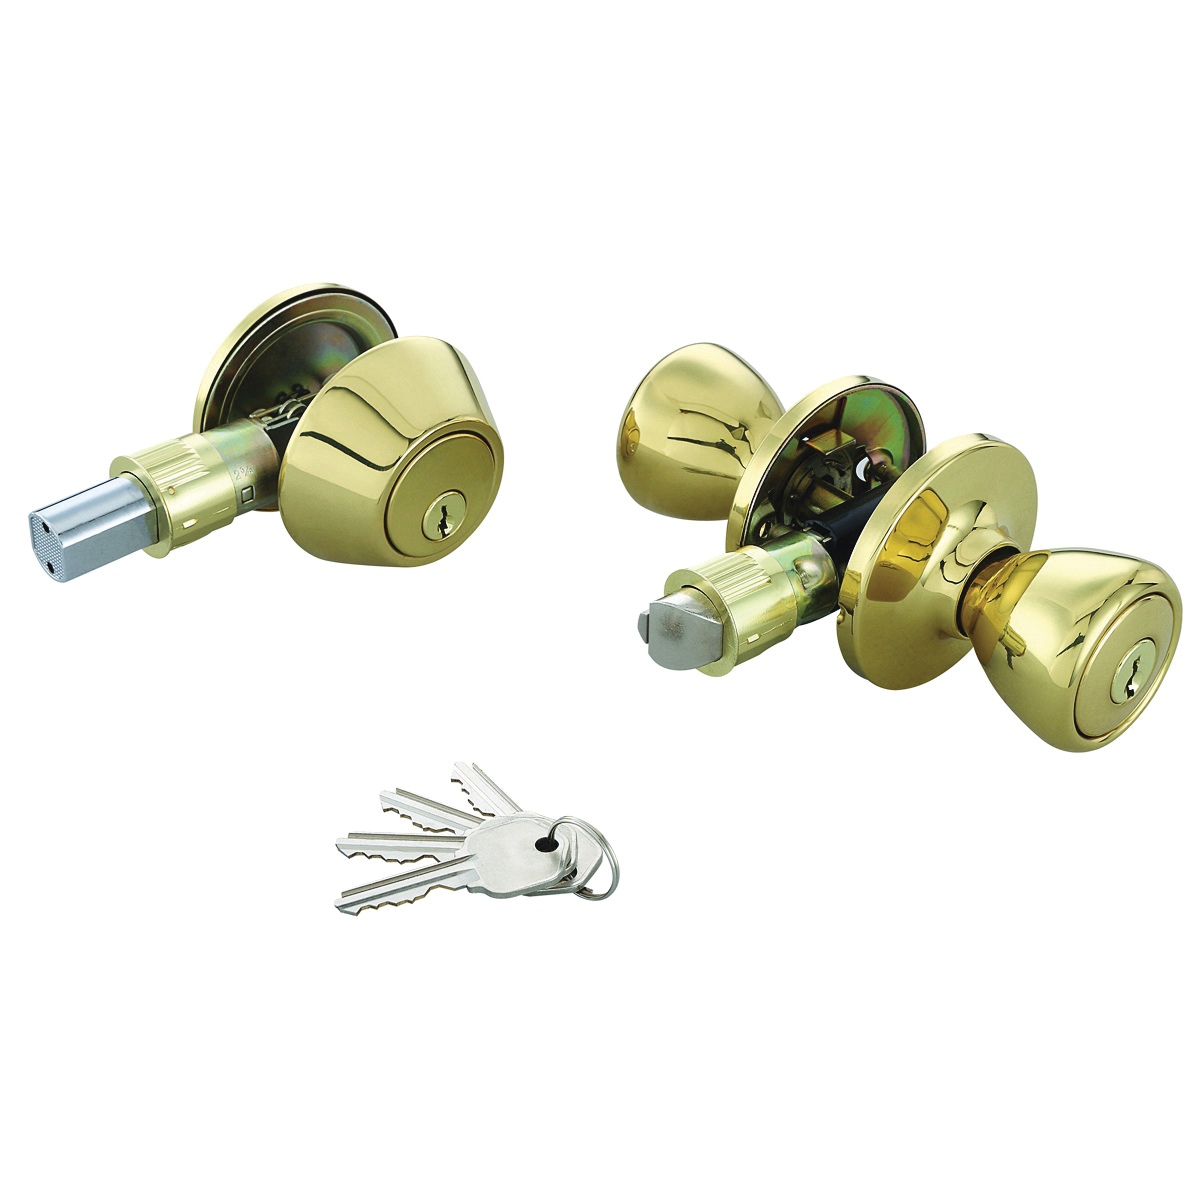 Picture of Prosource T-5764-D101PB Deadbolt and Entry Lockset, Keyed Alike Key, Polished Brass